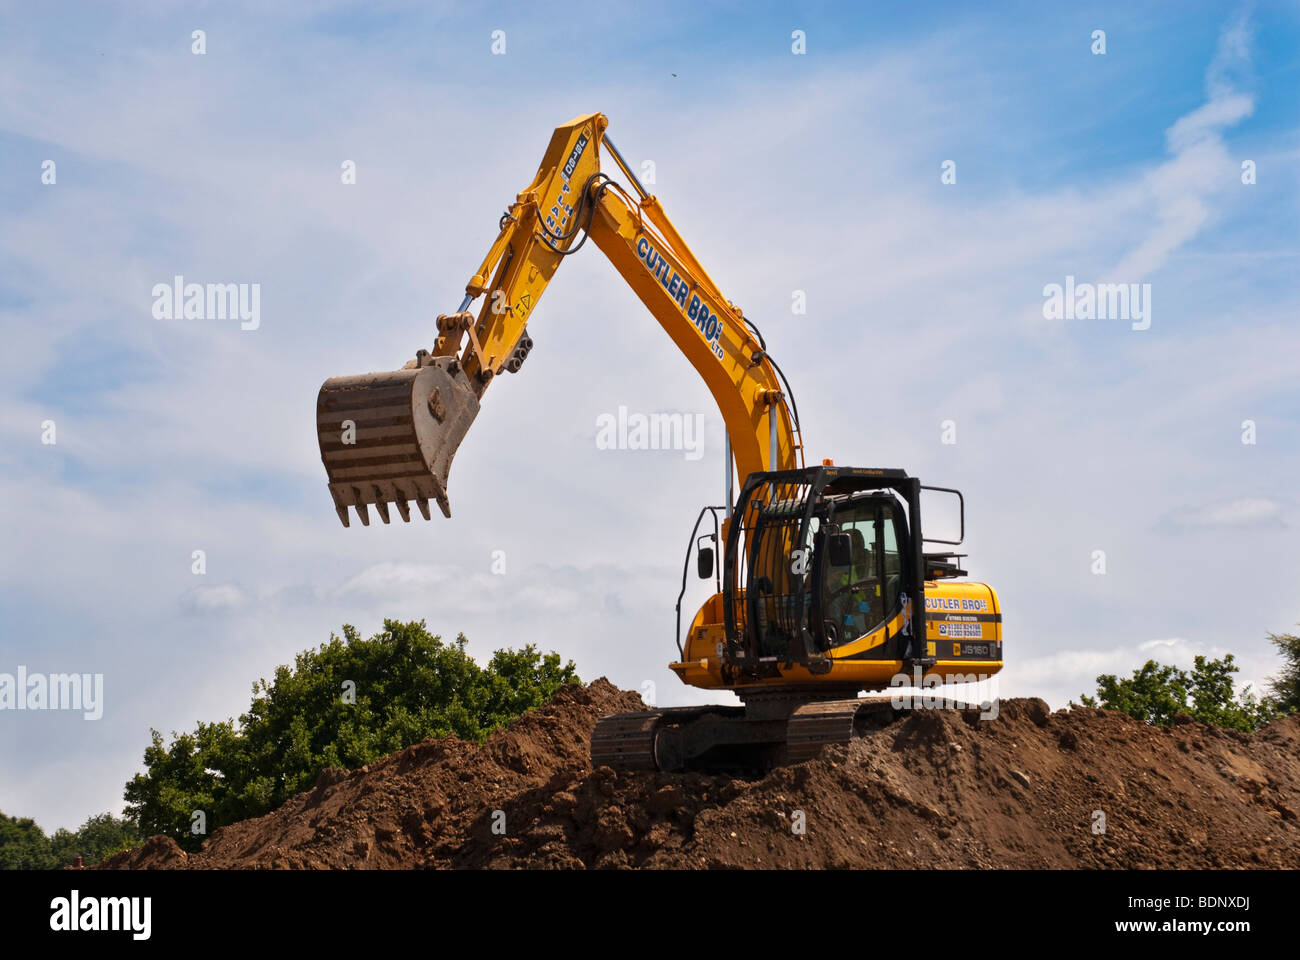 Earth moving digger on building site - Stock Image